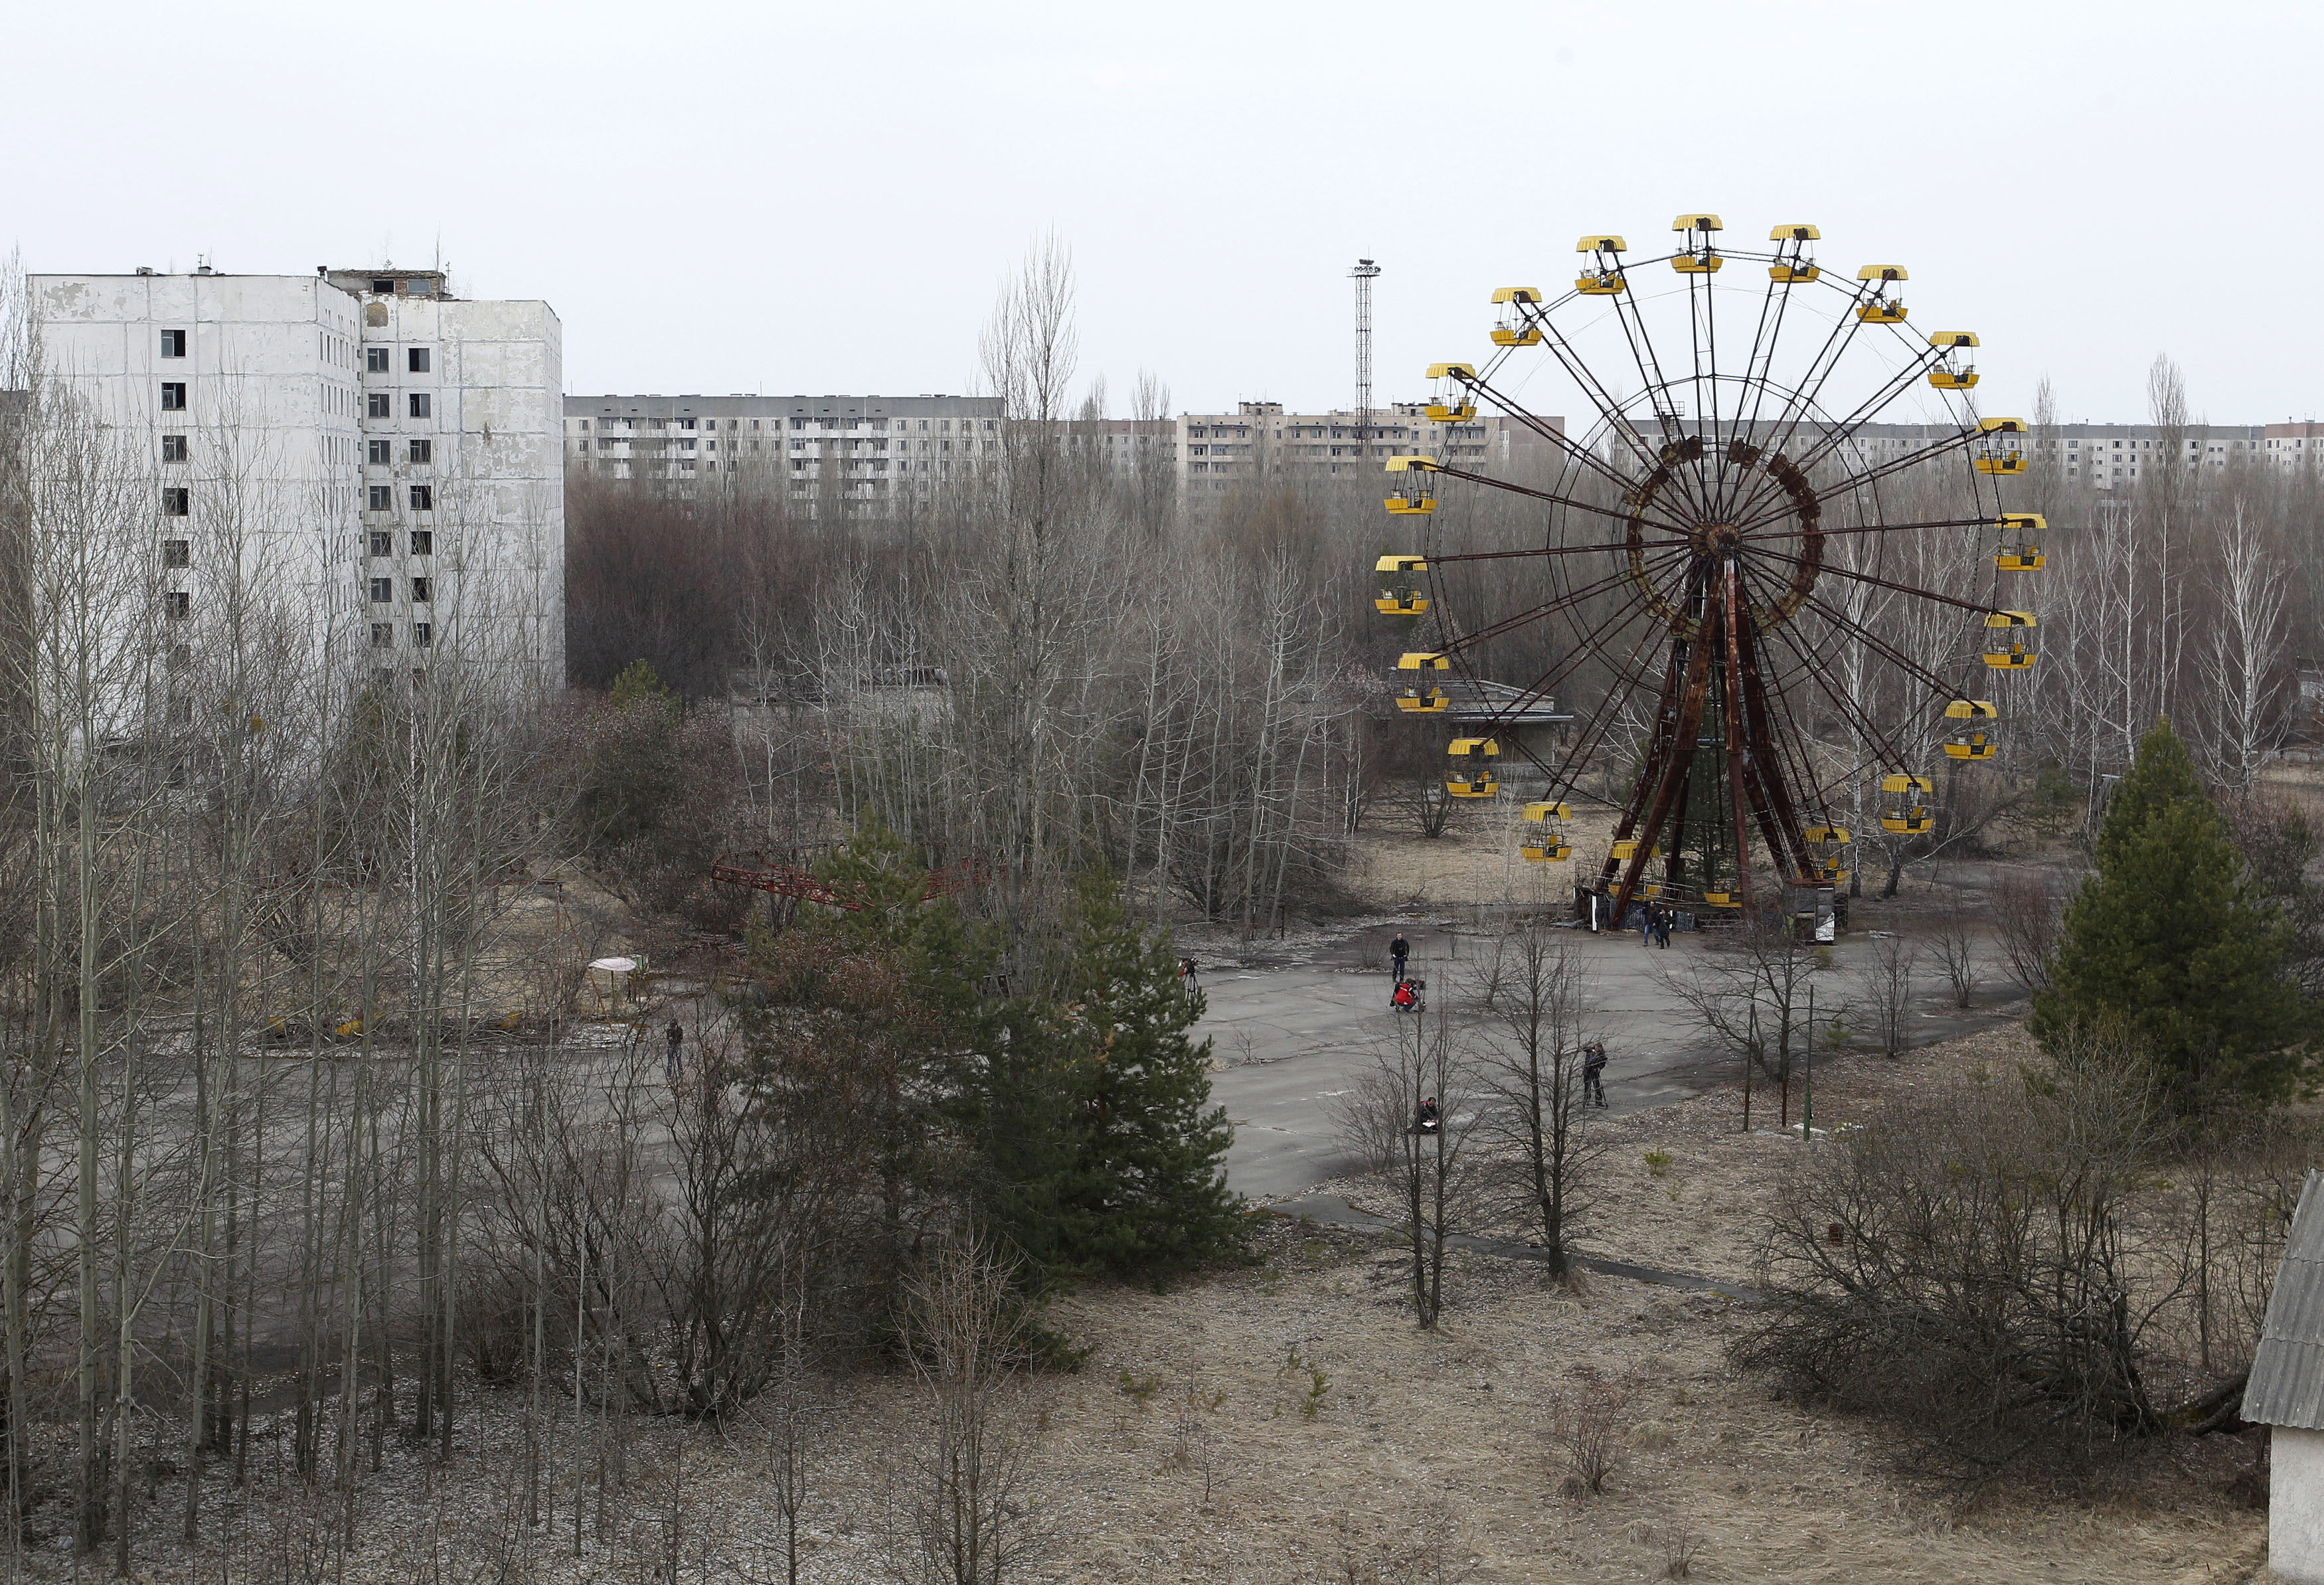 Chernobyl nuclear disaster - 1986